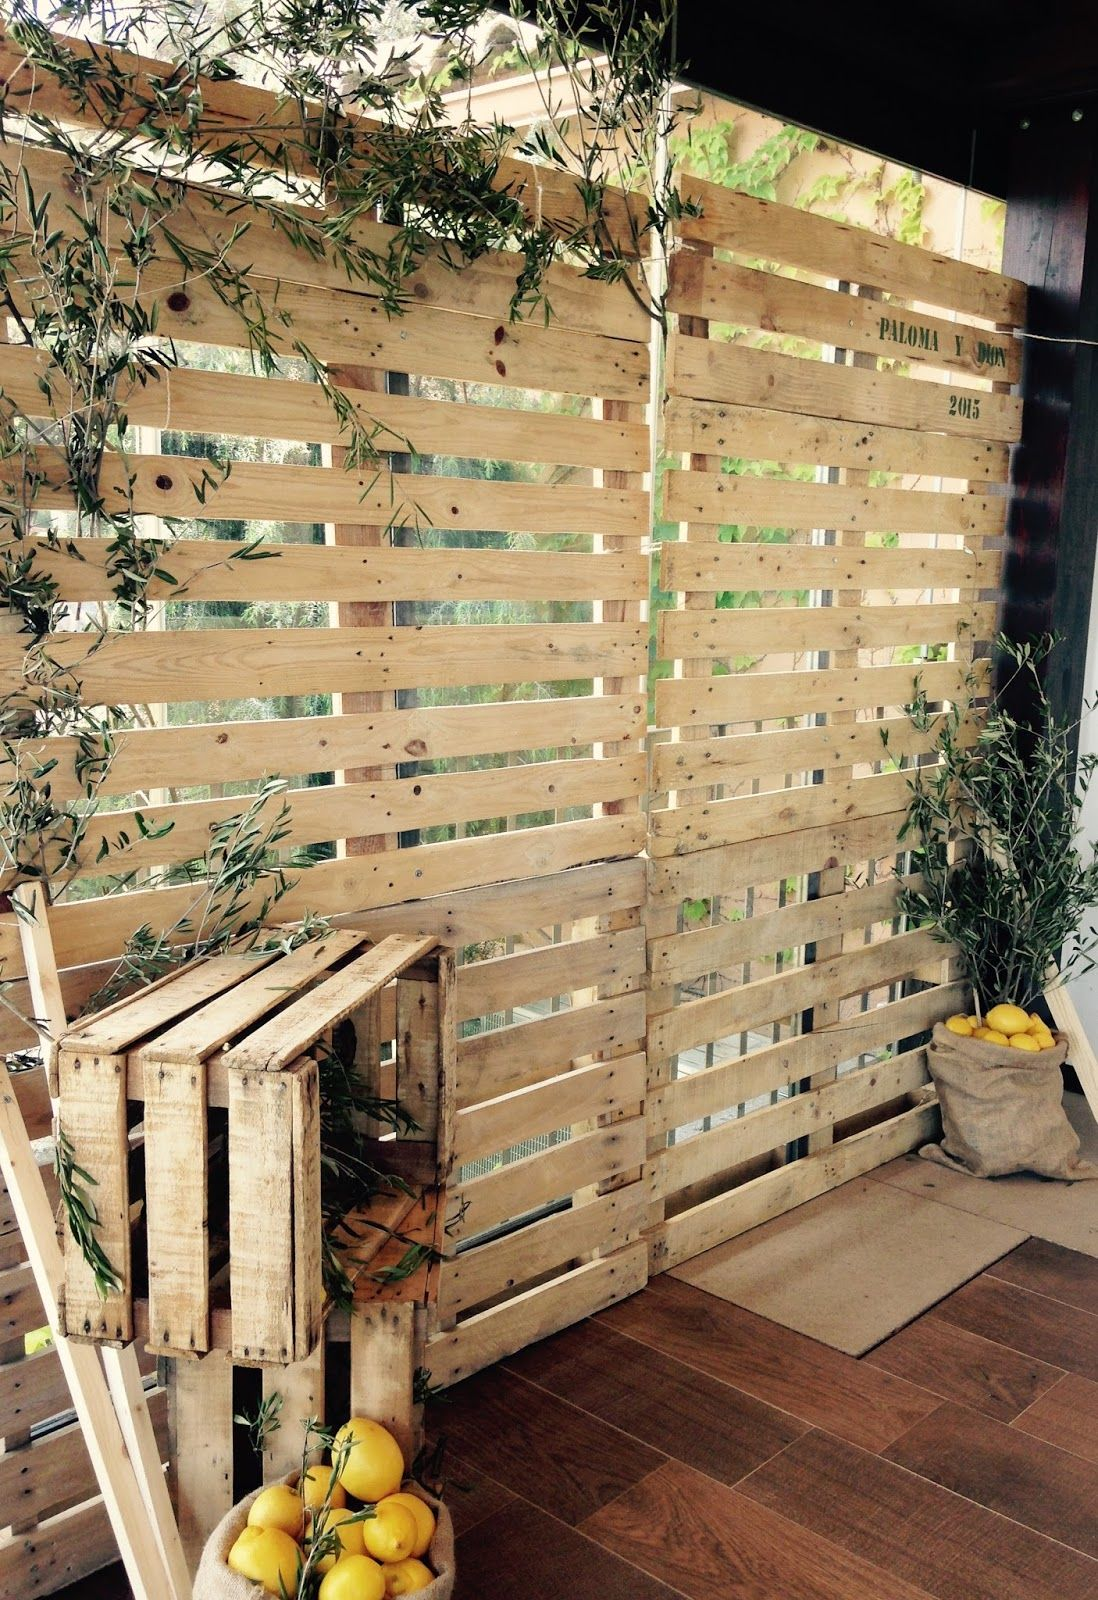 angelina purpurina | Repurpose | Pinterest | Backdrops, Pallets and ...